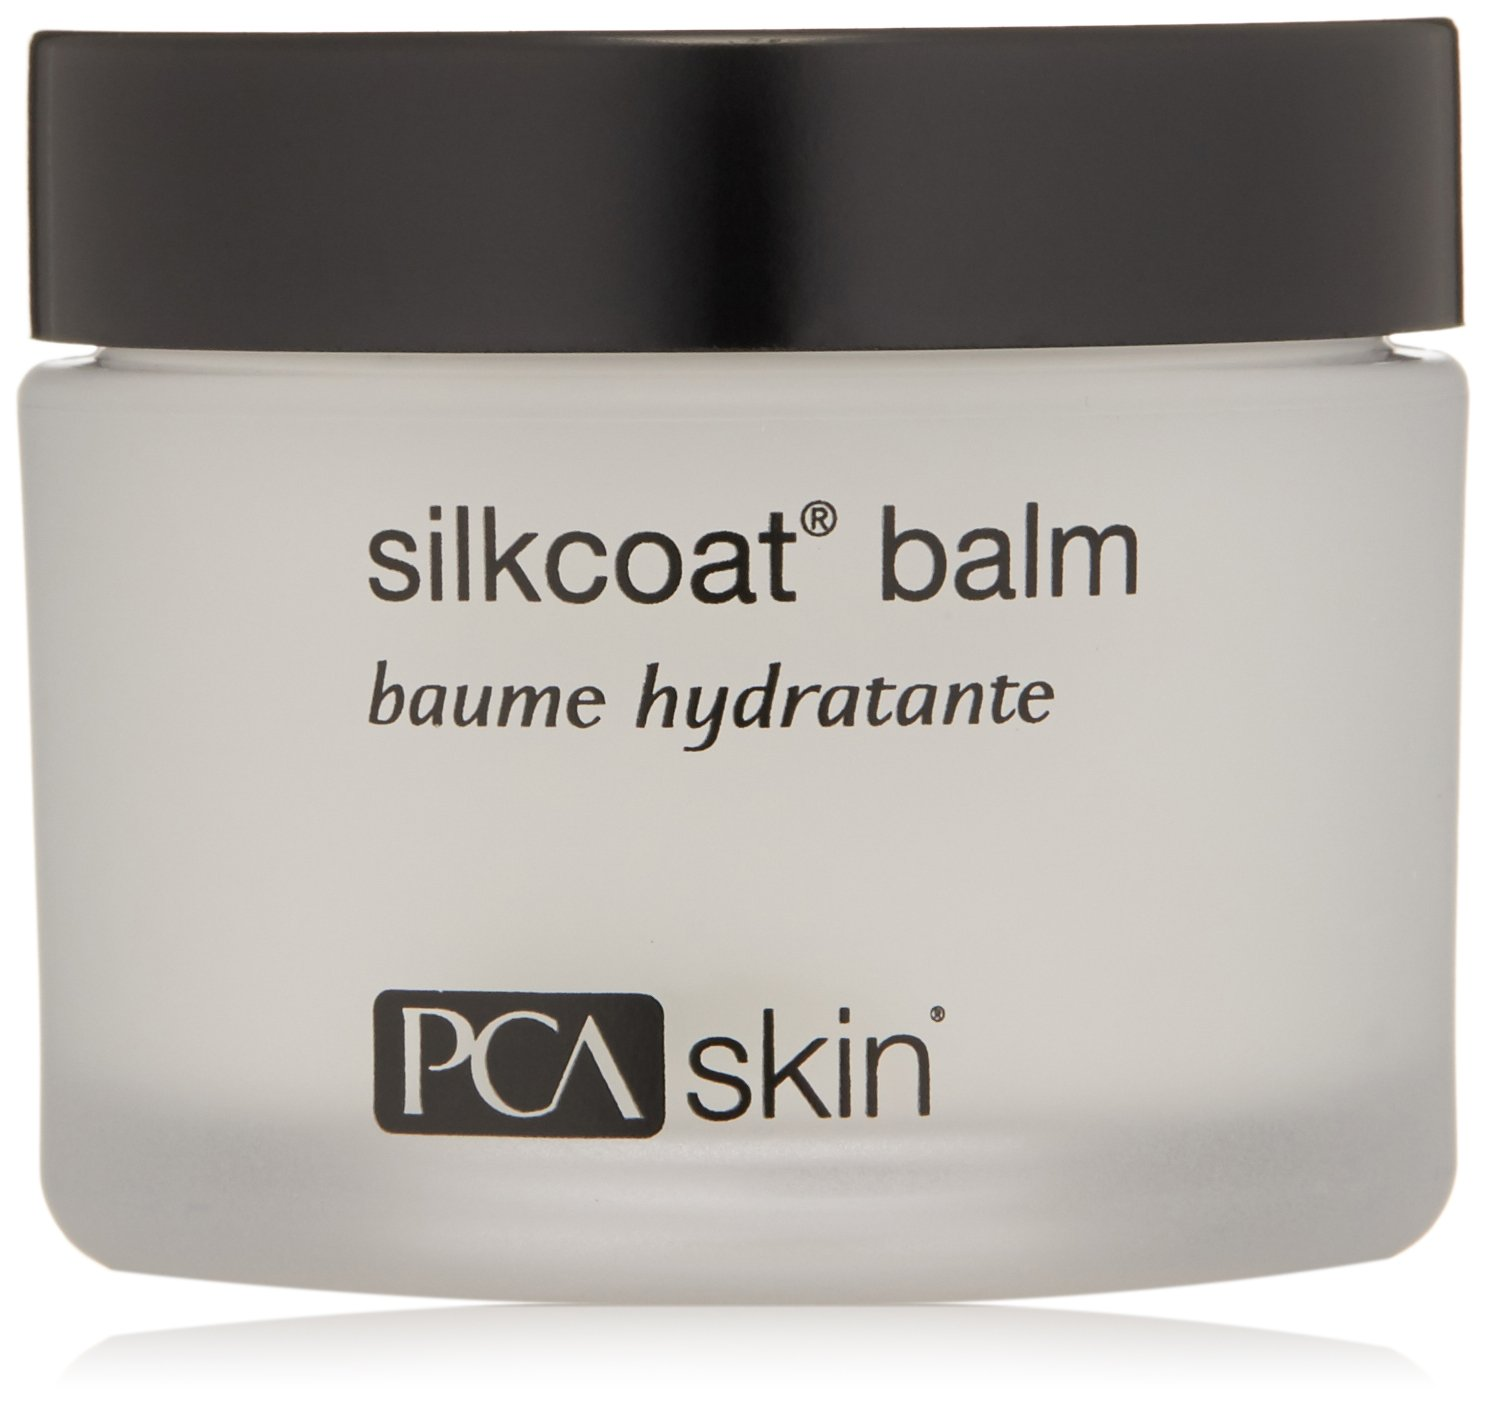 PCA SKIN Silkcoat Balm, Facial Moisturizer for Dry or Mature Skin, Good for Harsh or Cold Climates, 1.7 ounce